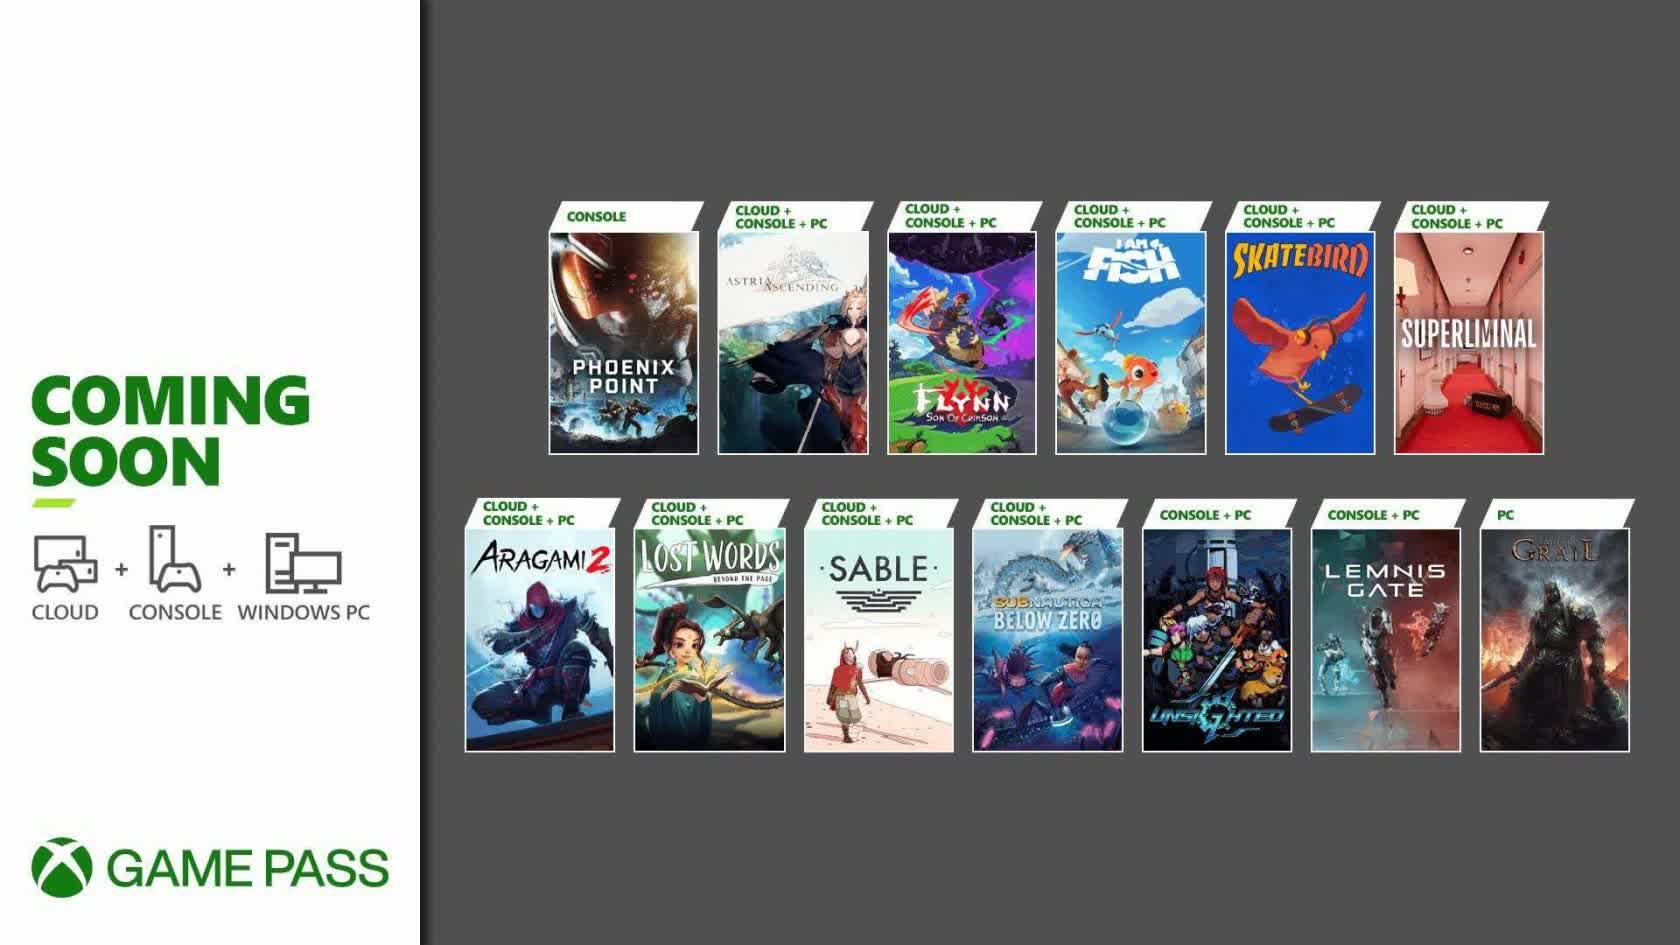 Microsoft's Xbox Game Pass is getting 12 new titles this month